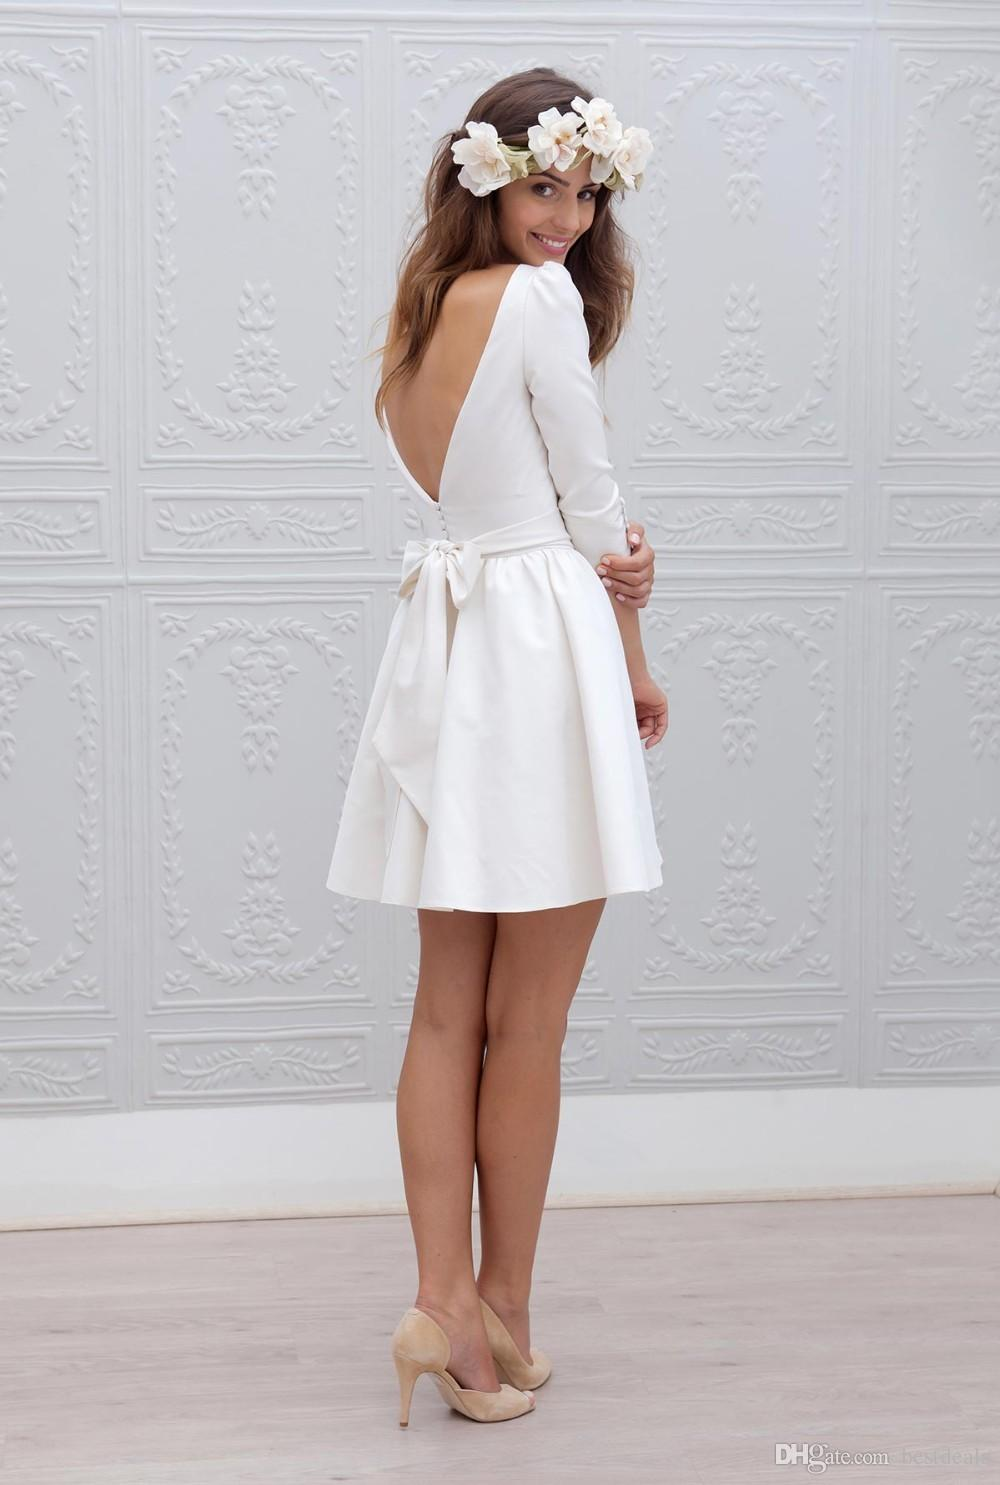 Designer Short Mini Reception Wedding Dresses 2017 A-line 3/4 Sleeves Sash Simple Sexy Open Back Casual Informal Bridal Gown New